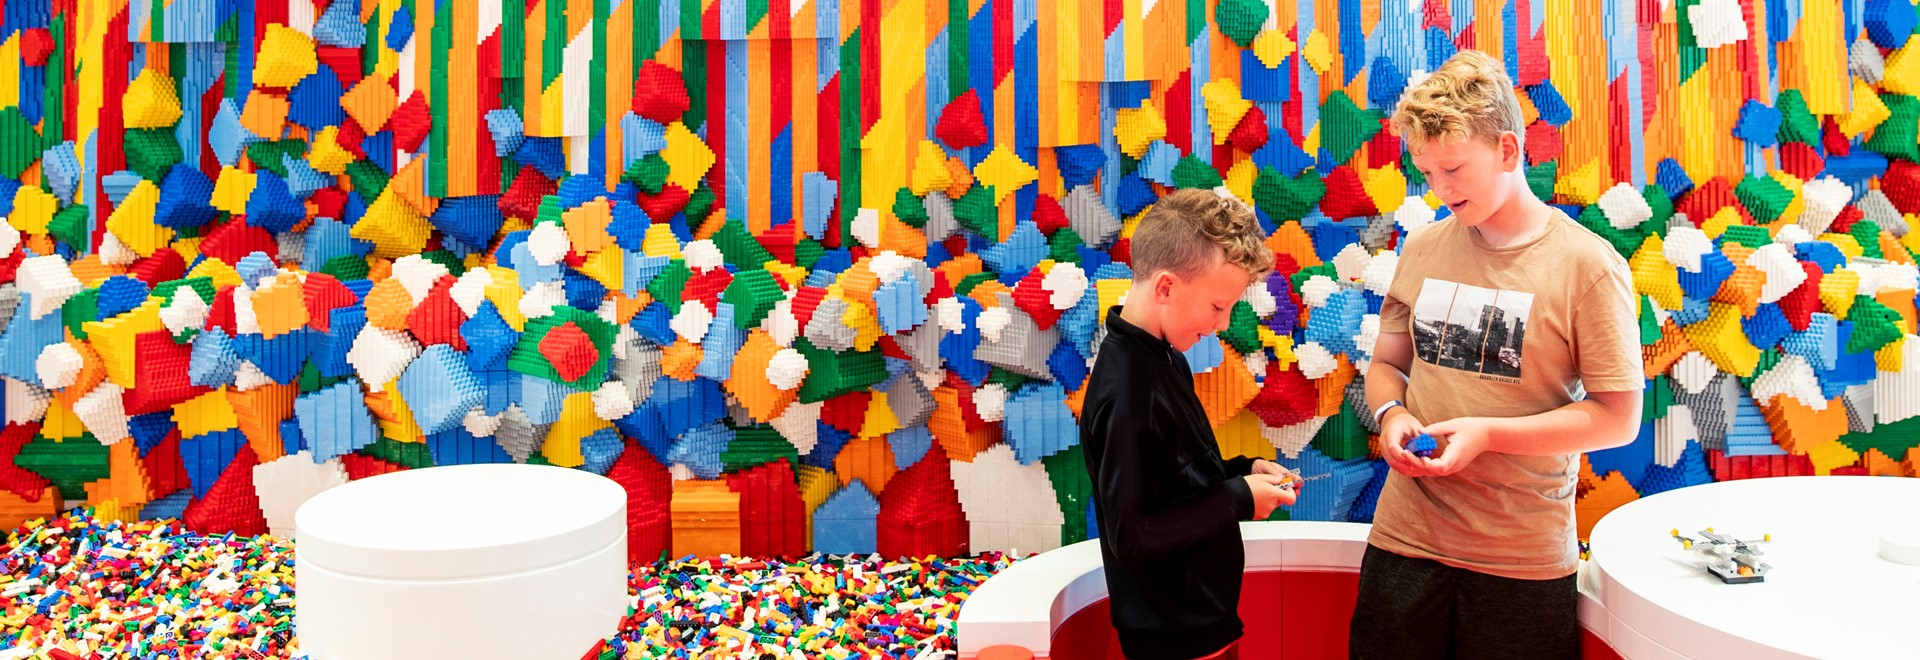 We're celebrating creativity in LEGO House 4 Sept. - 6 Oct.